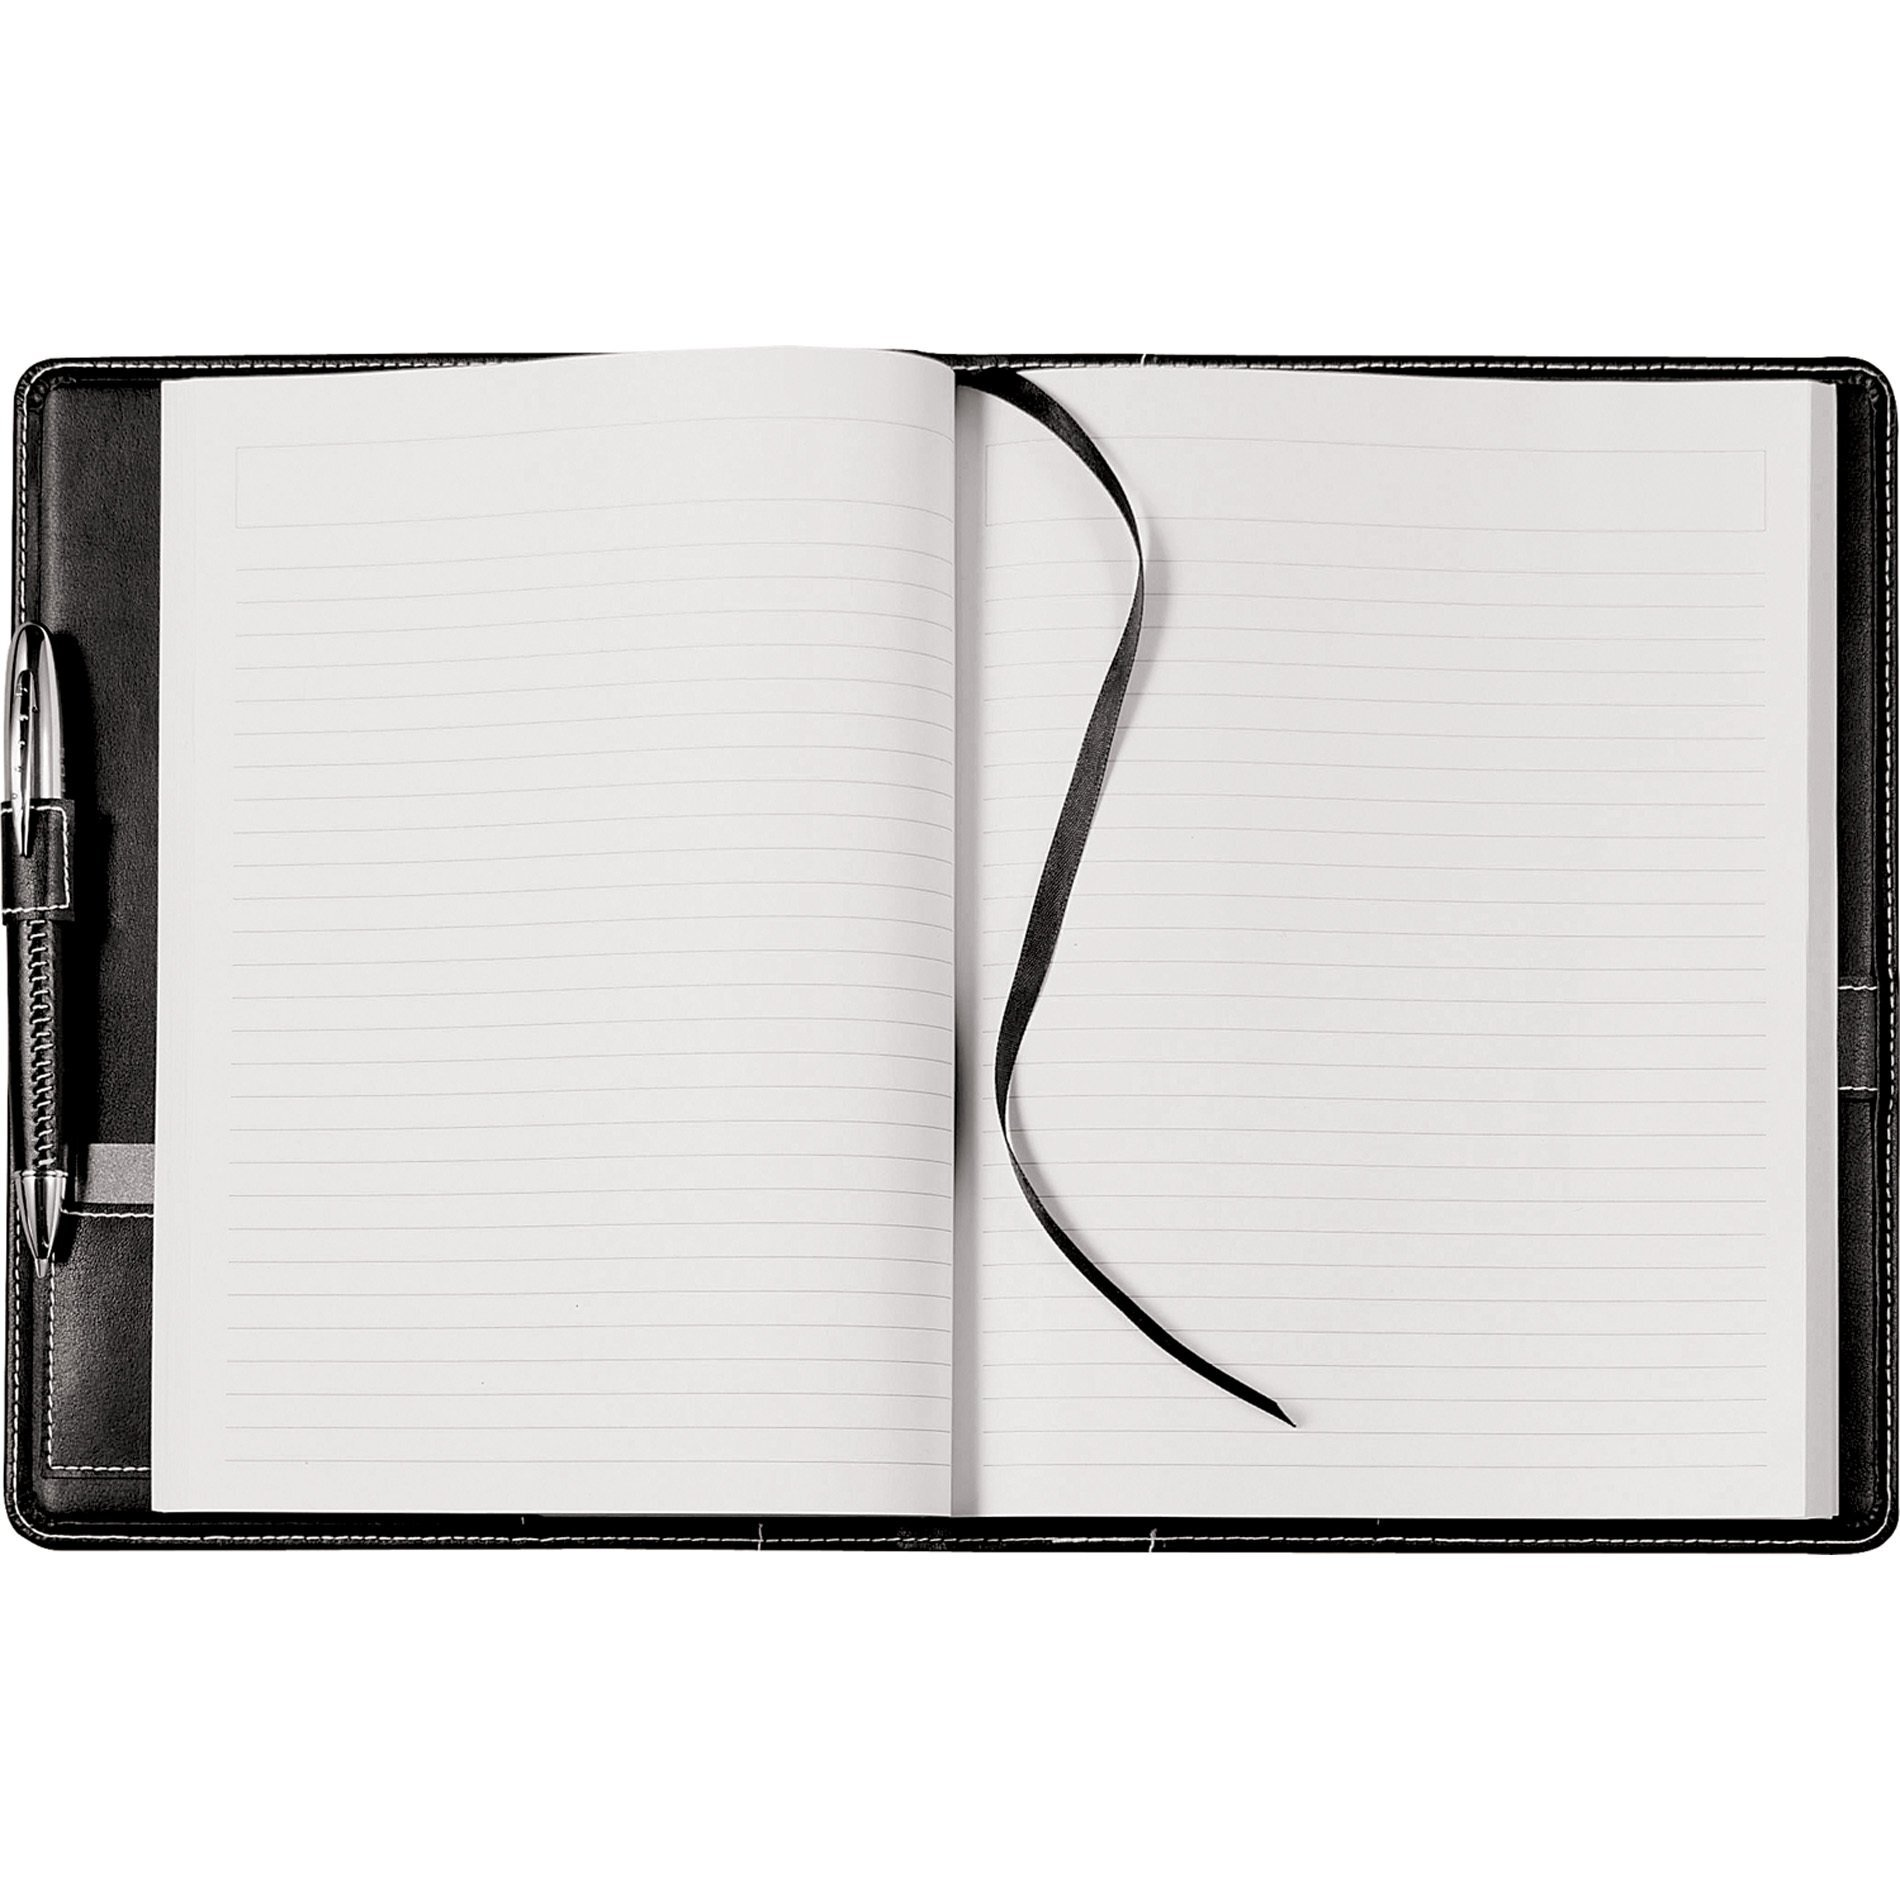 "Hampton JournalBook, 7-3/4"" x 9-3/5"""